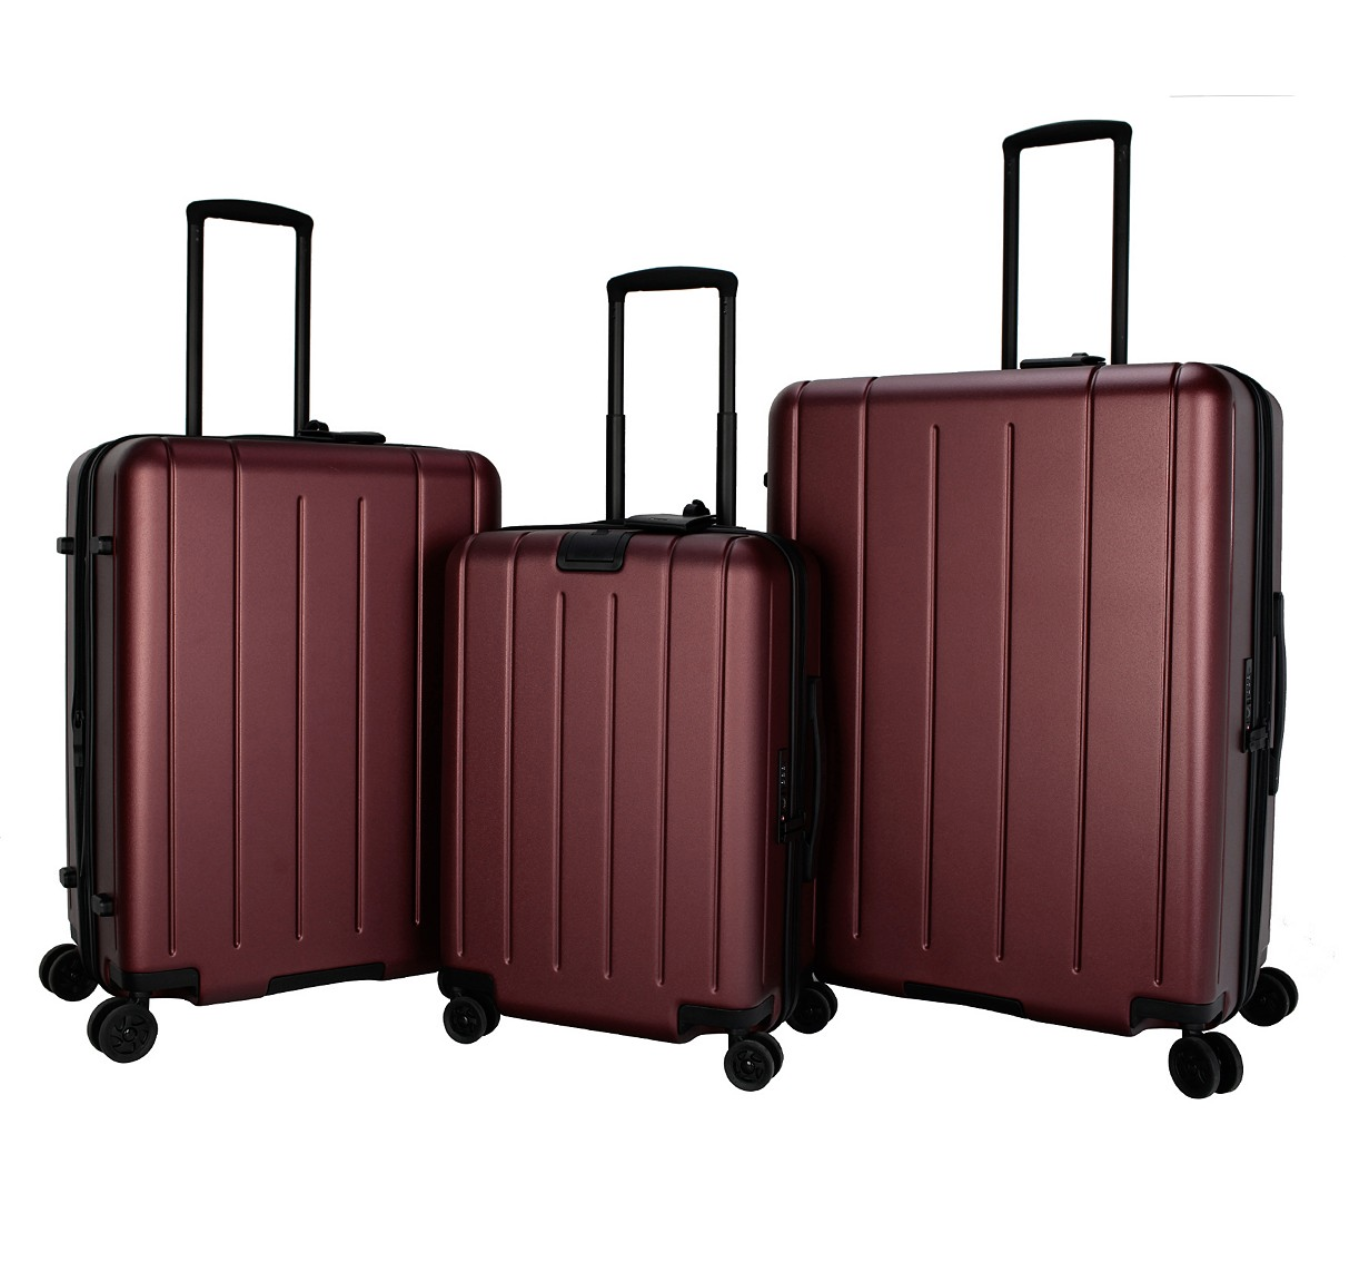 Trips hardside luggage set